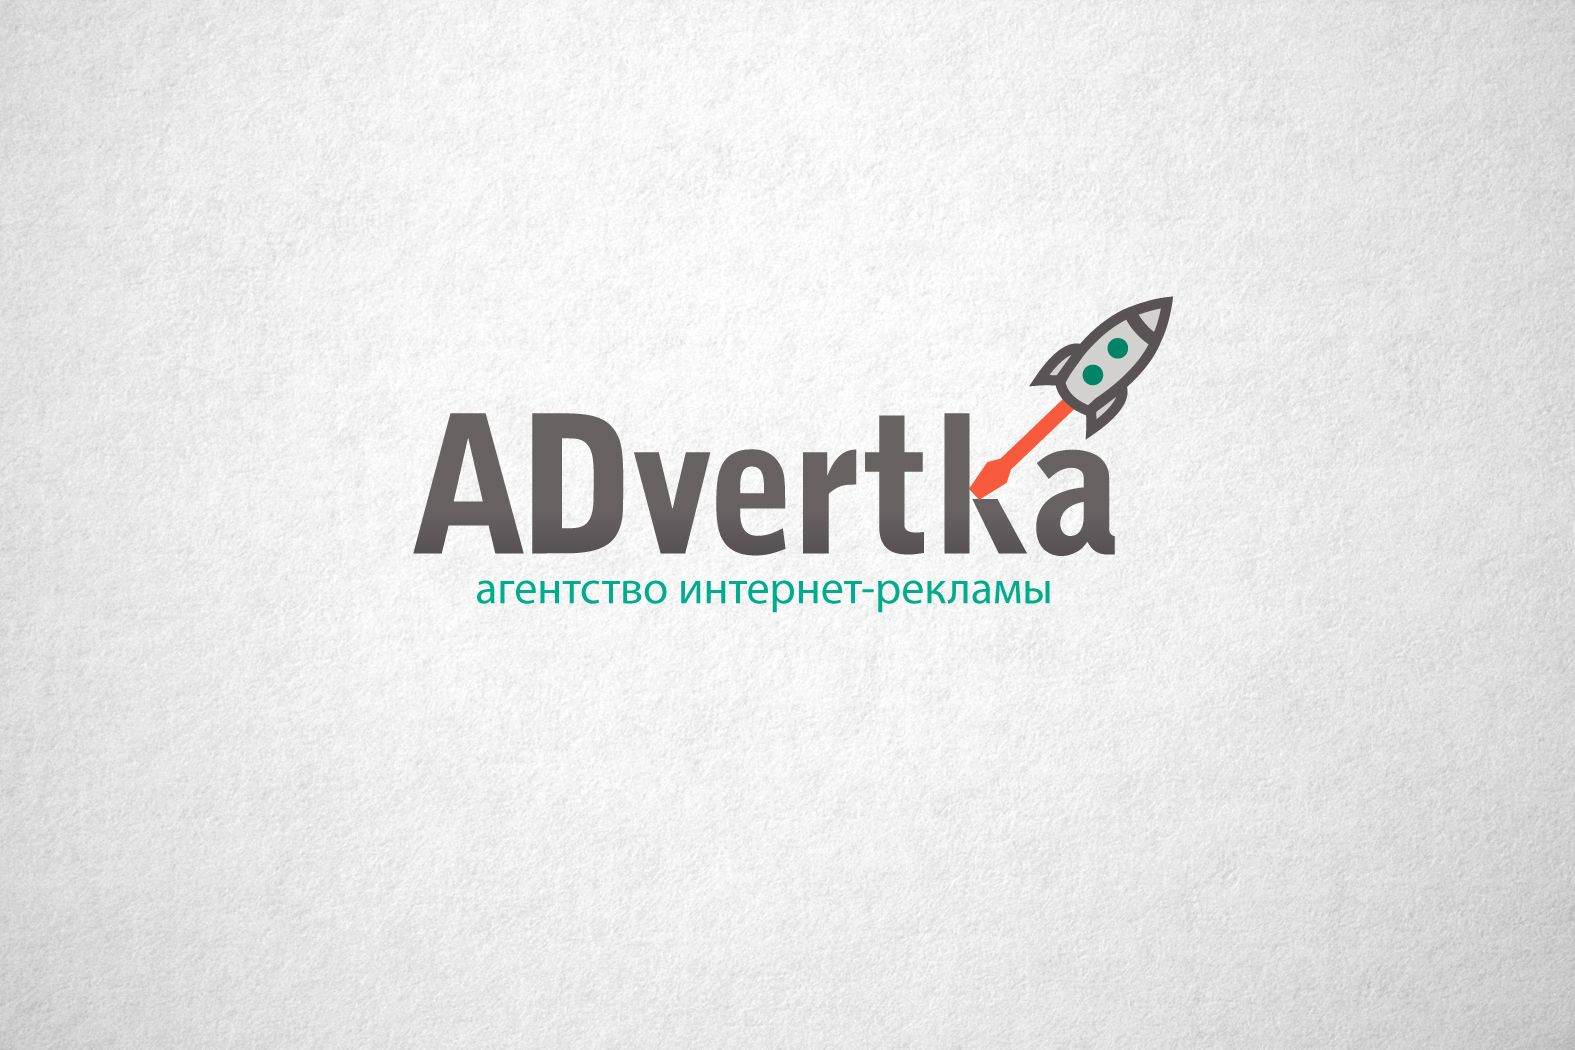 логотип для интернет агентства ADvertka - дизайнер funkielevis